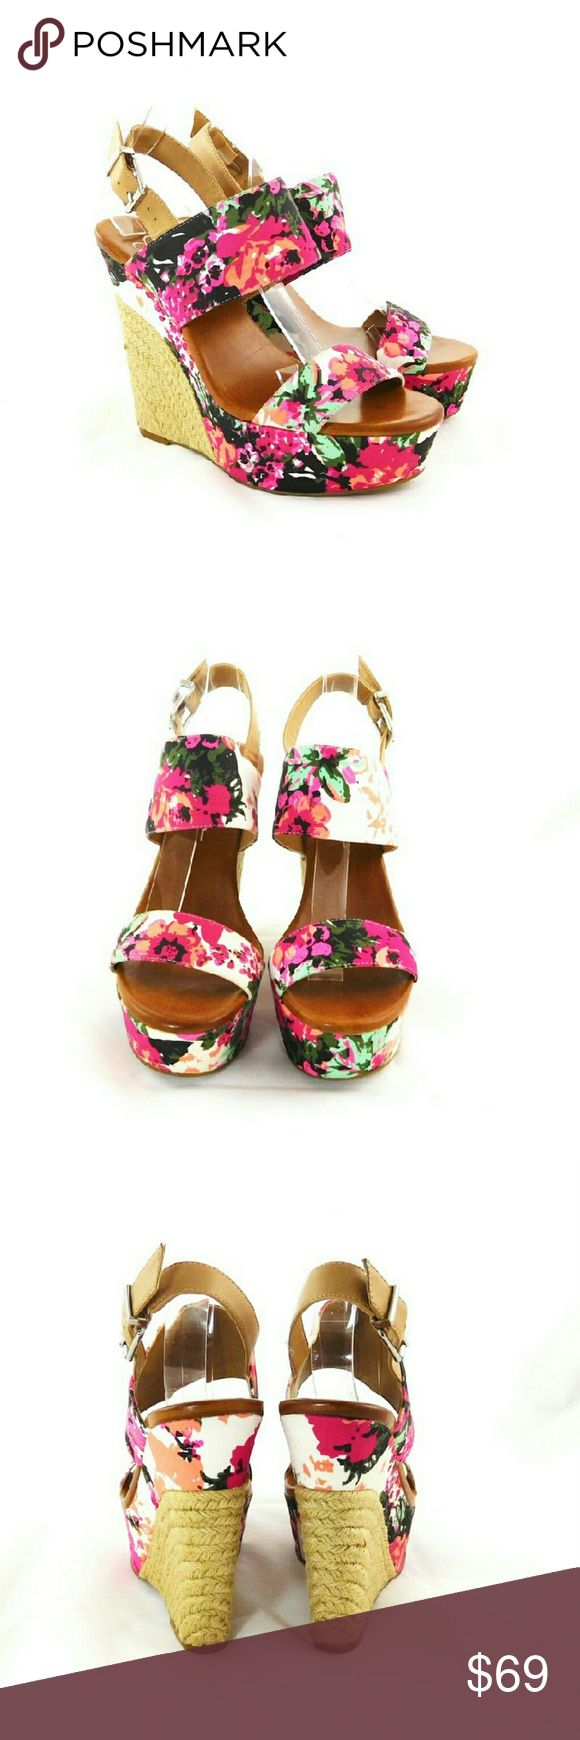 """Jessica Simpson Anika Floral Wedge Sandals Thanks for checking out my closet. I take all my own pics. The shoes are authentic and new in box. Shoes have a textile upper with 1.5"""" platform and 5"""" heel. Jessica Simpson Shoes Sandals"""